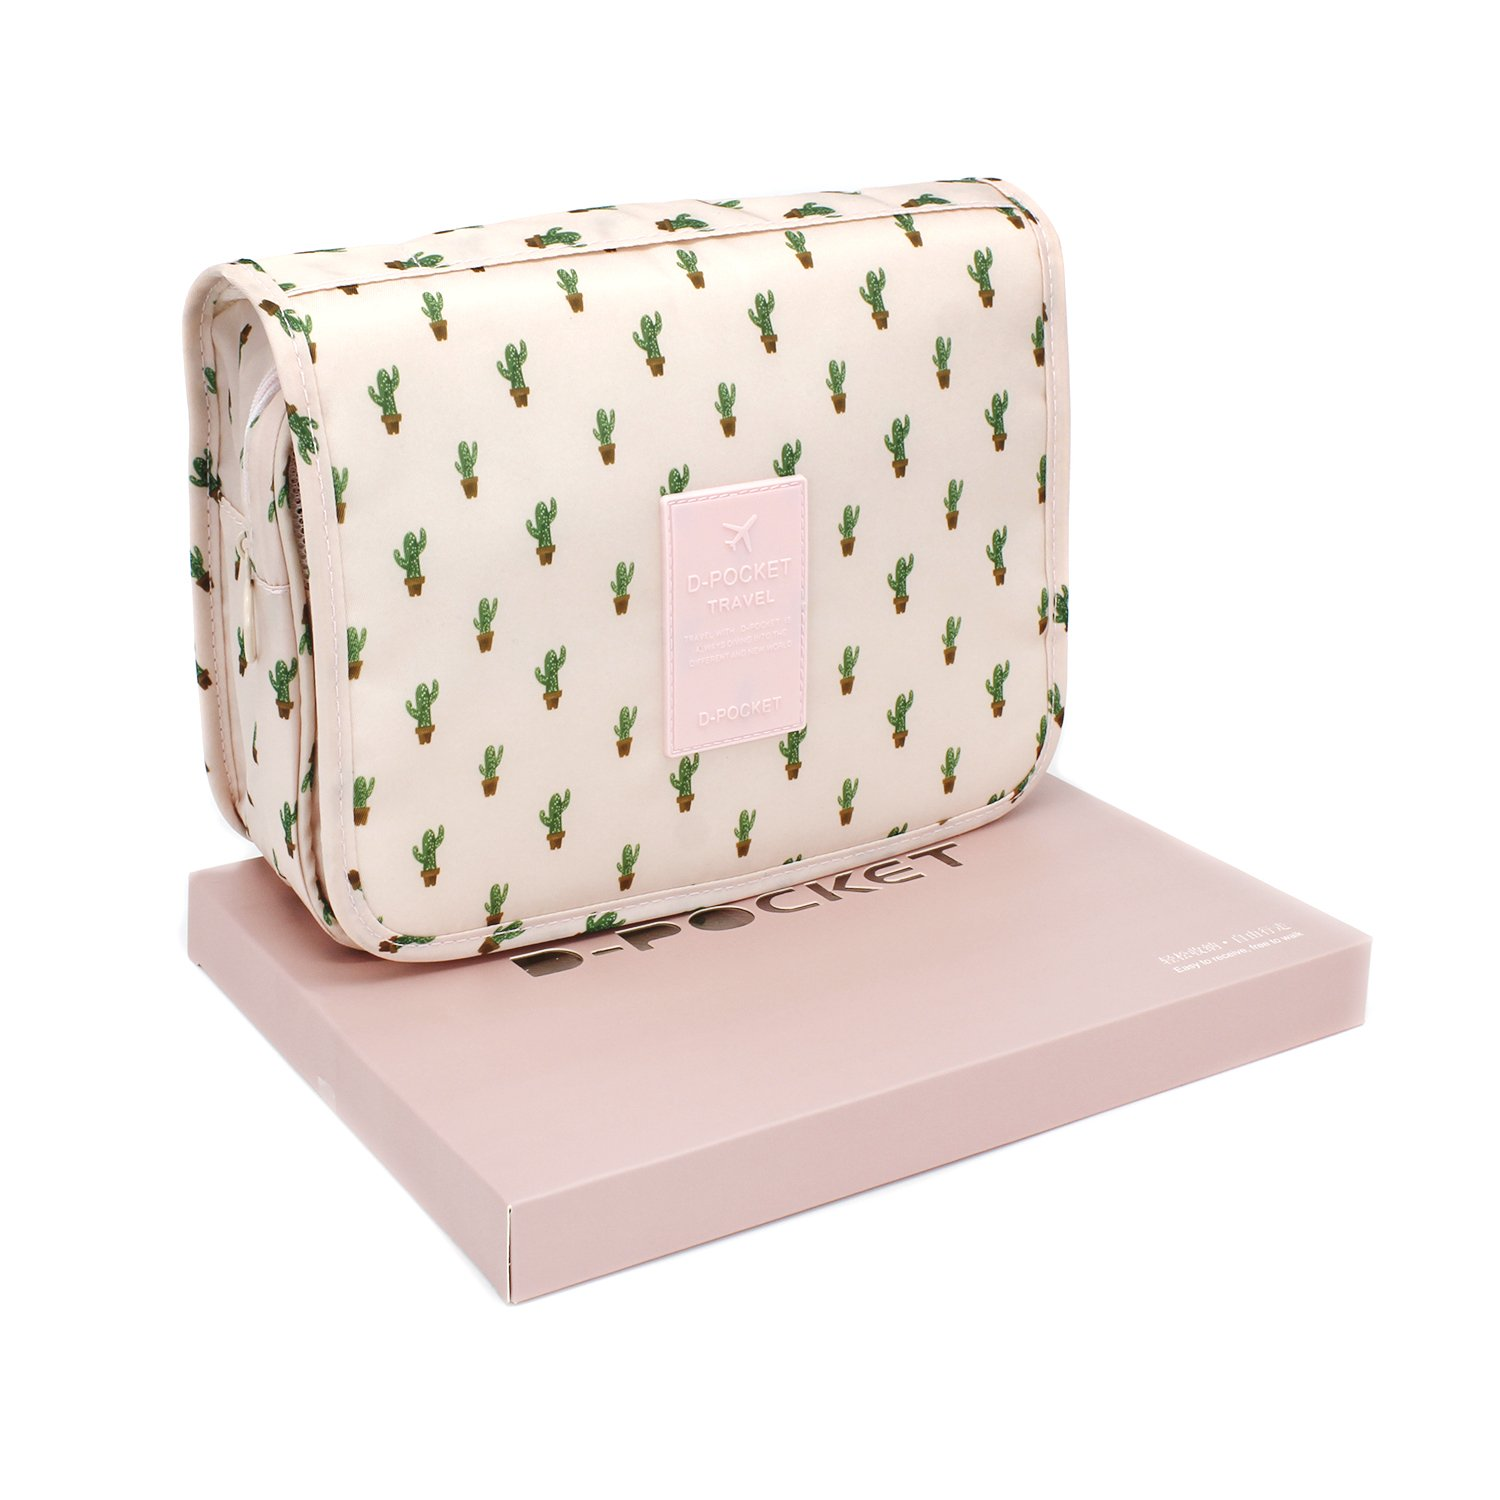 Hanging Toiletry Bag,Travel Cosmetic Organizer,Hanging Toiletry Kit for Women and Men (Cactus)